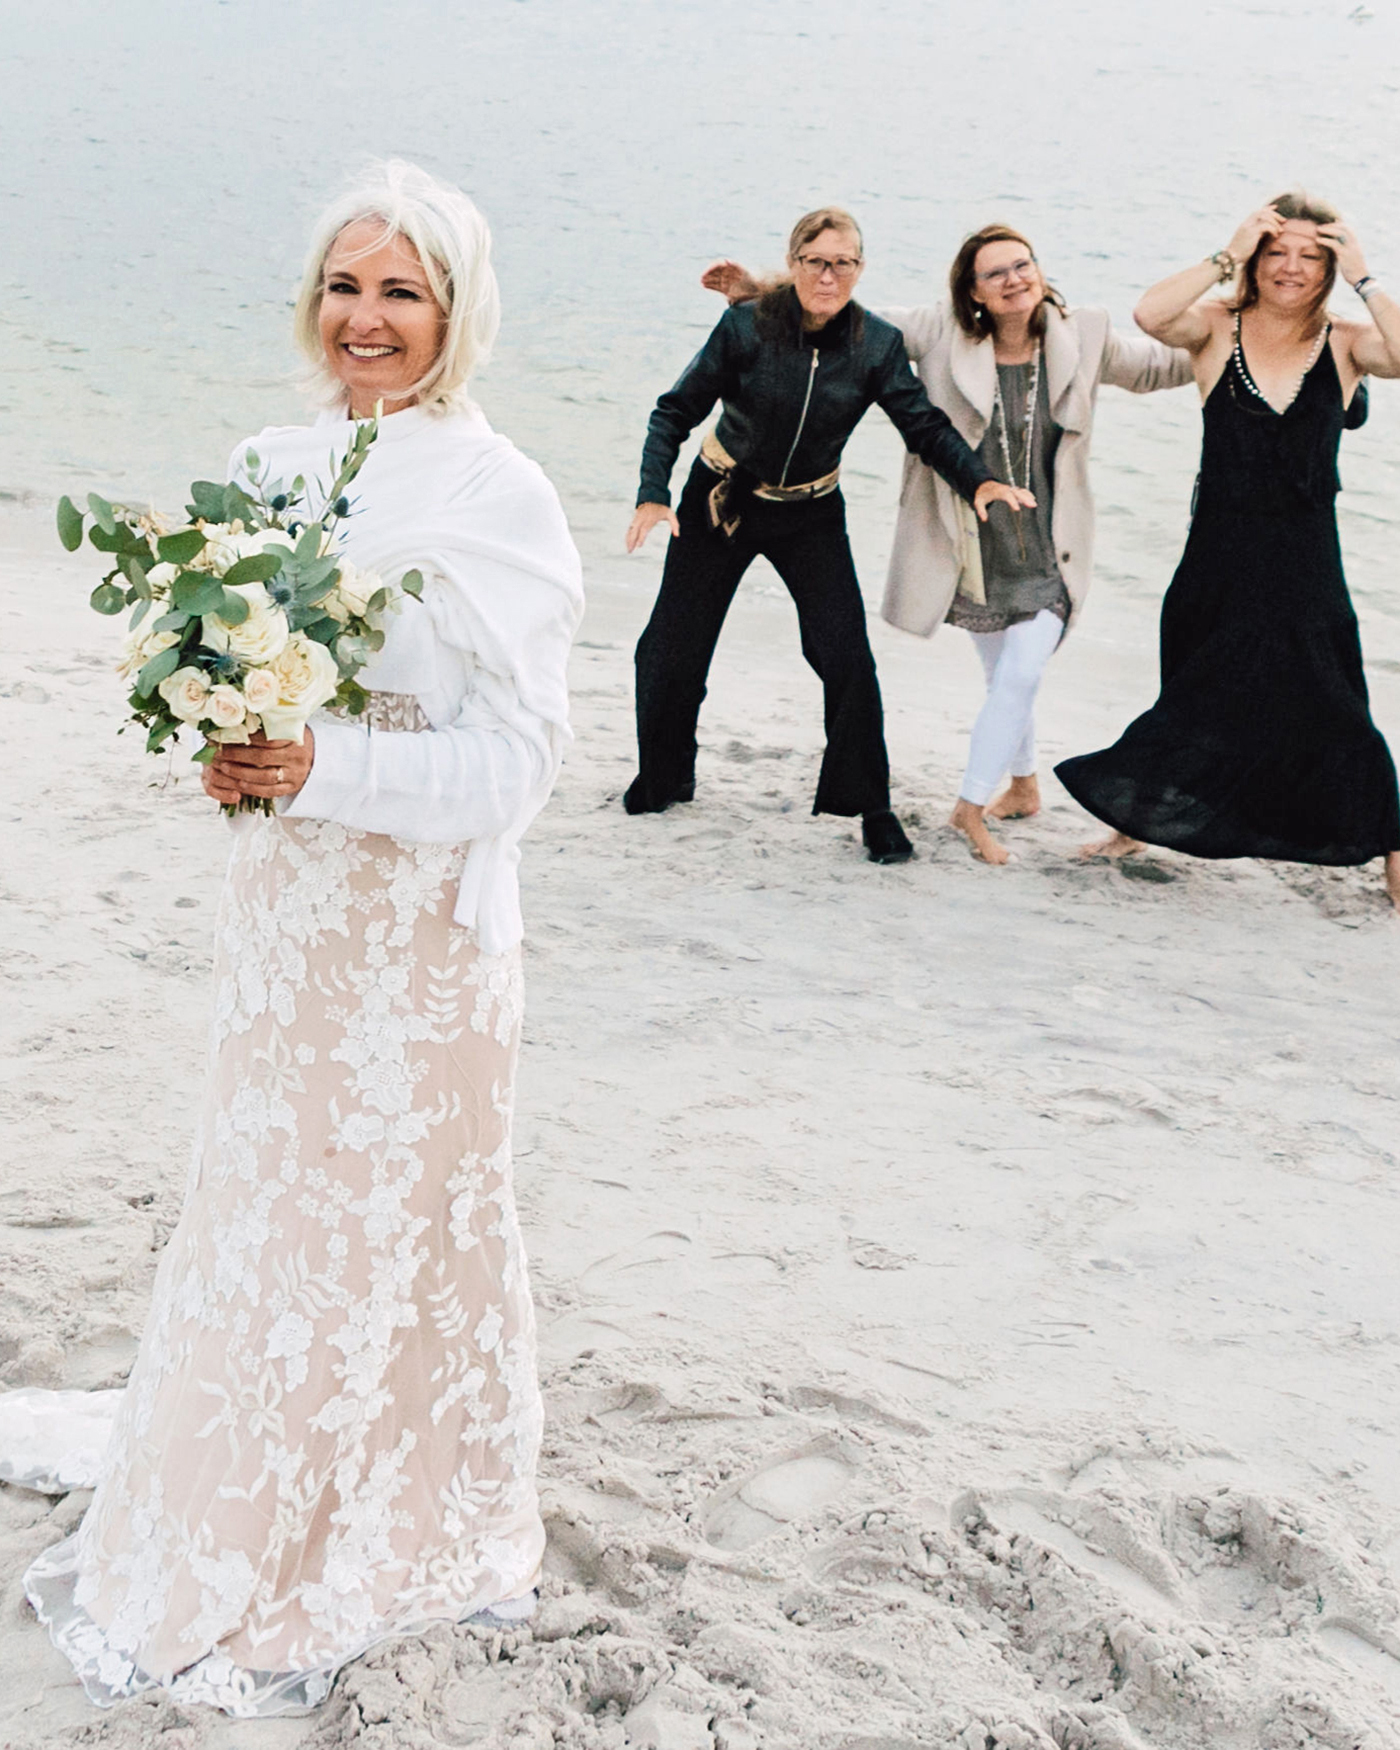 bridal party bouquet toss on beach